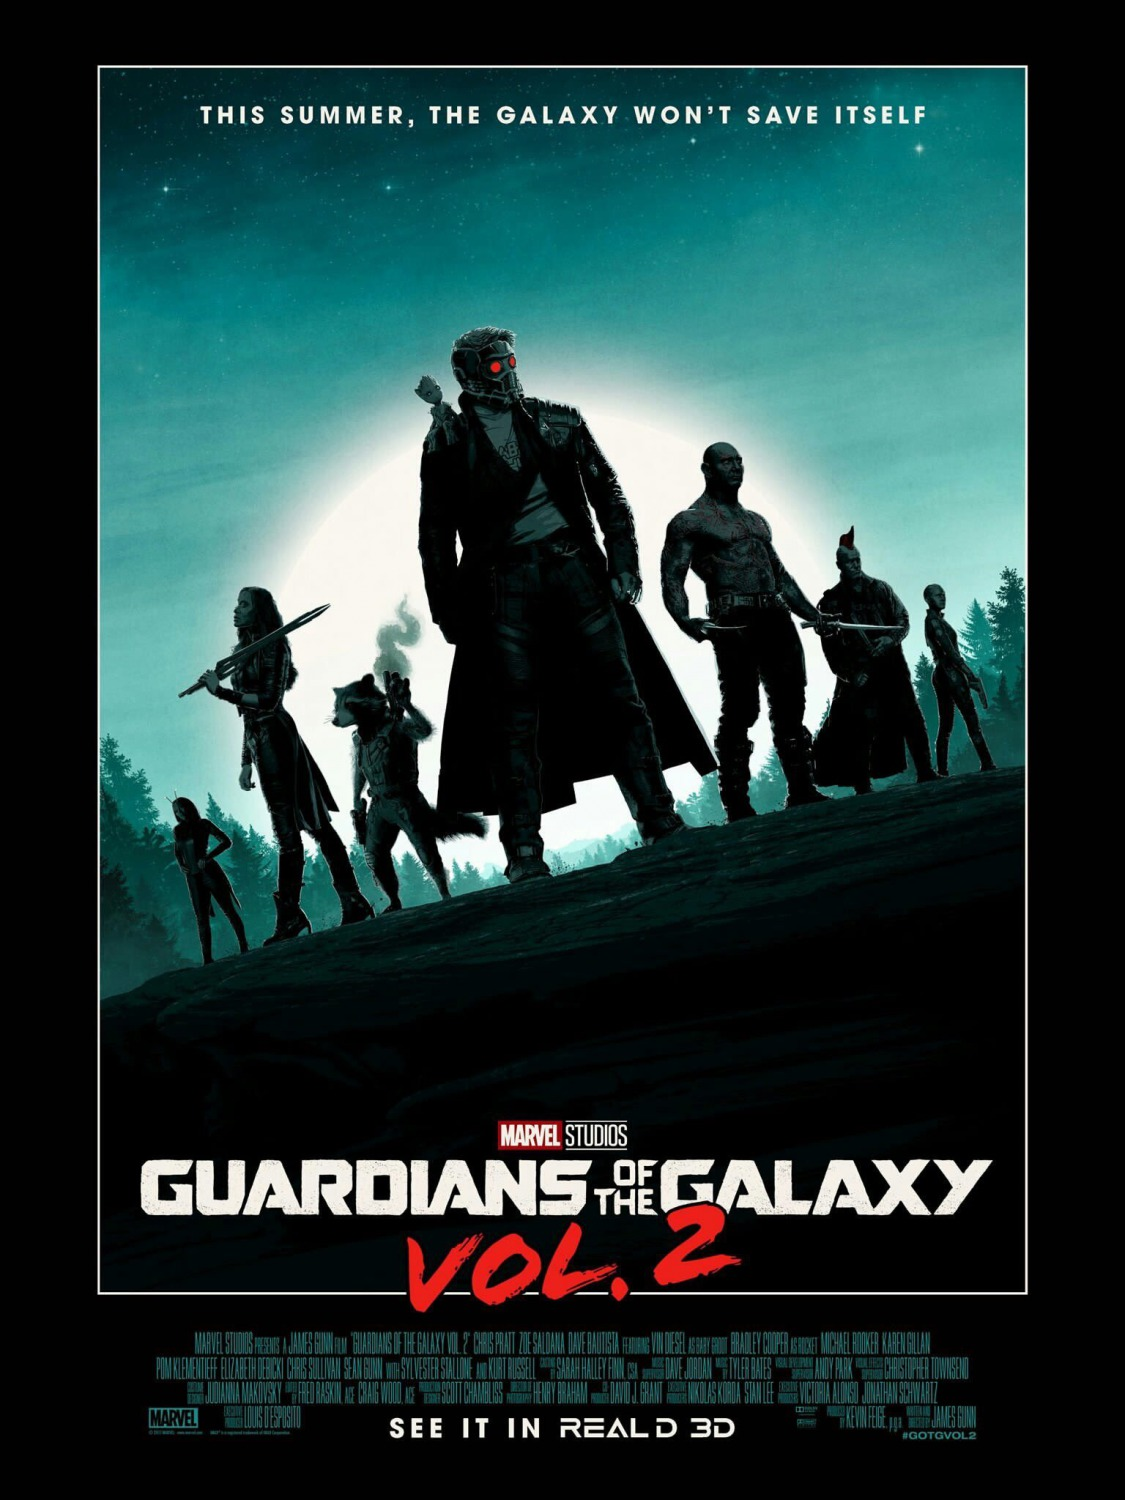 Four Pulsing TV Spots For Guardians Of The Galaxy Vol. 2 Blast Online As A New Poster Rallies The Crew